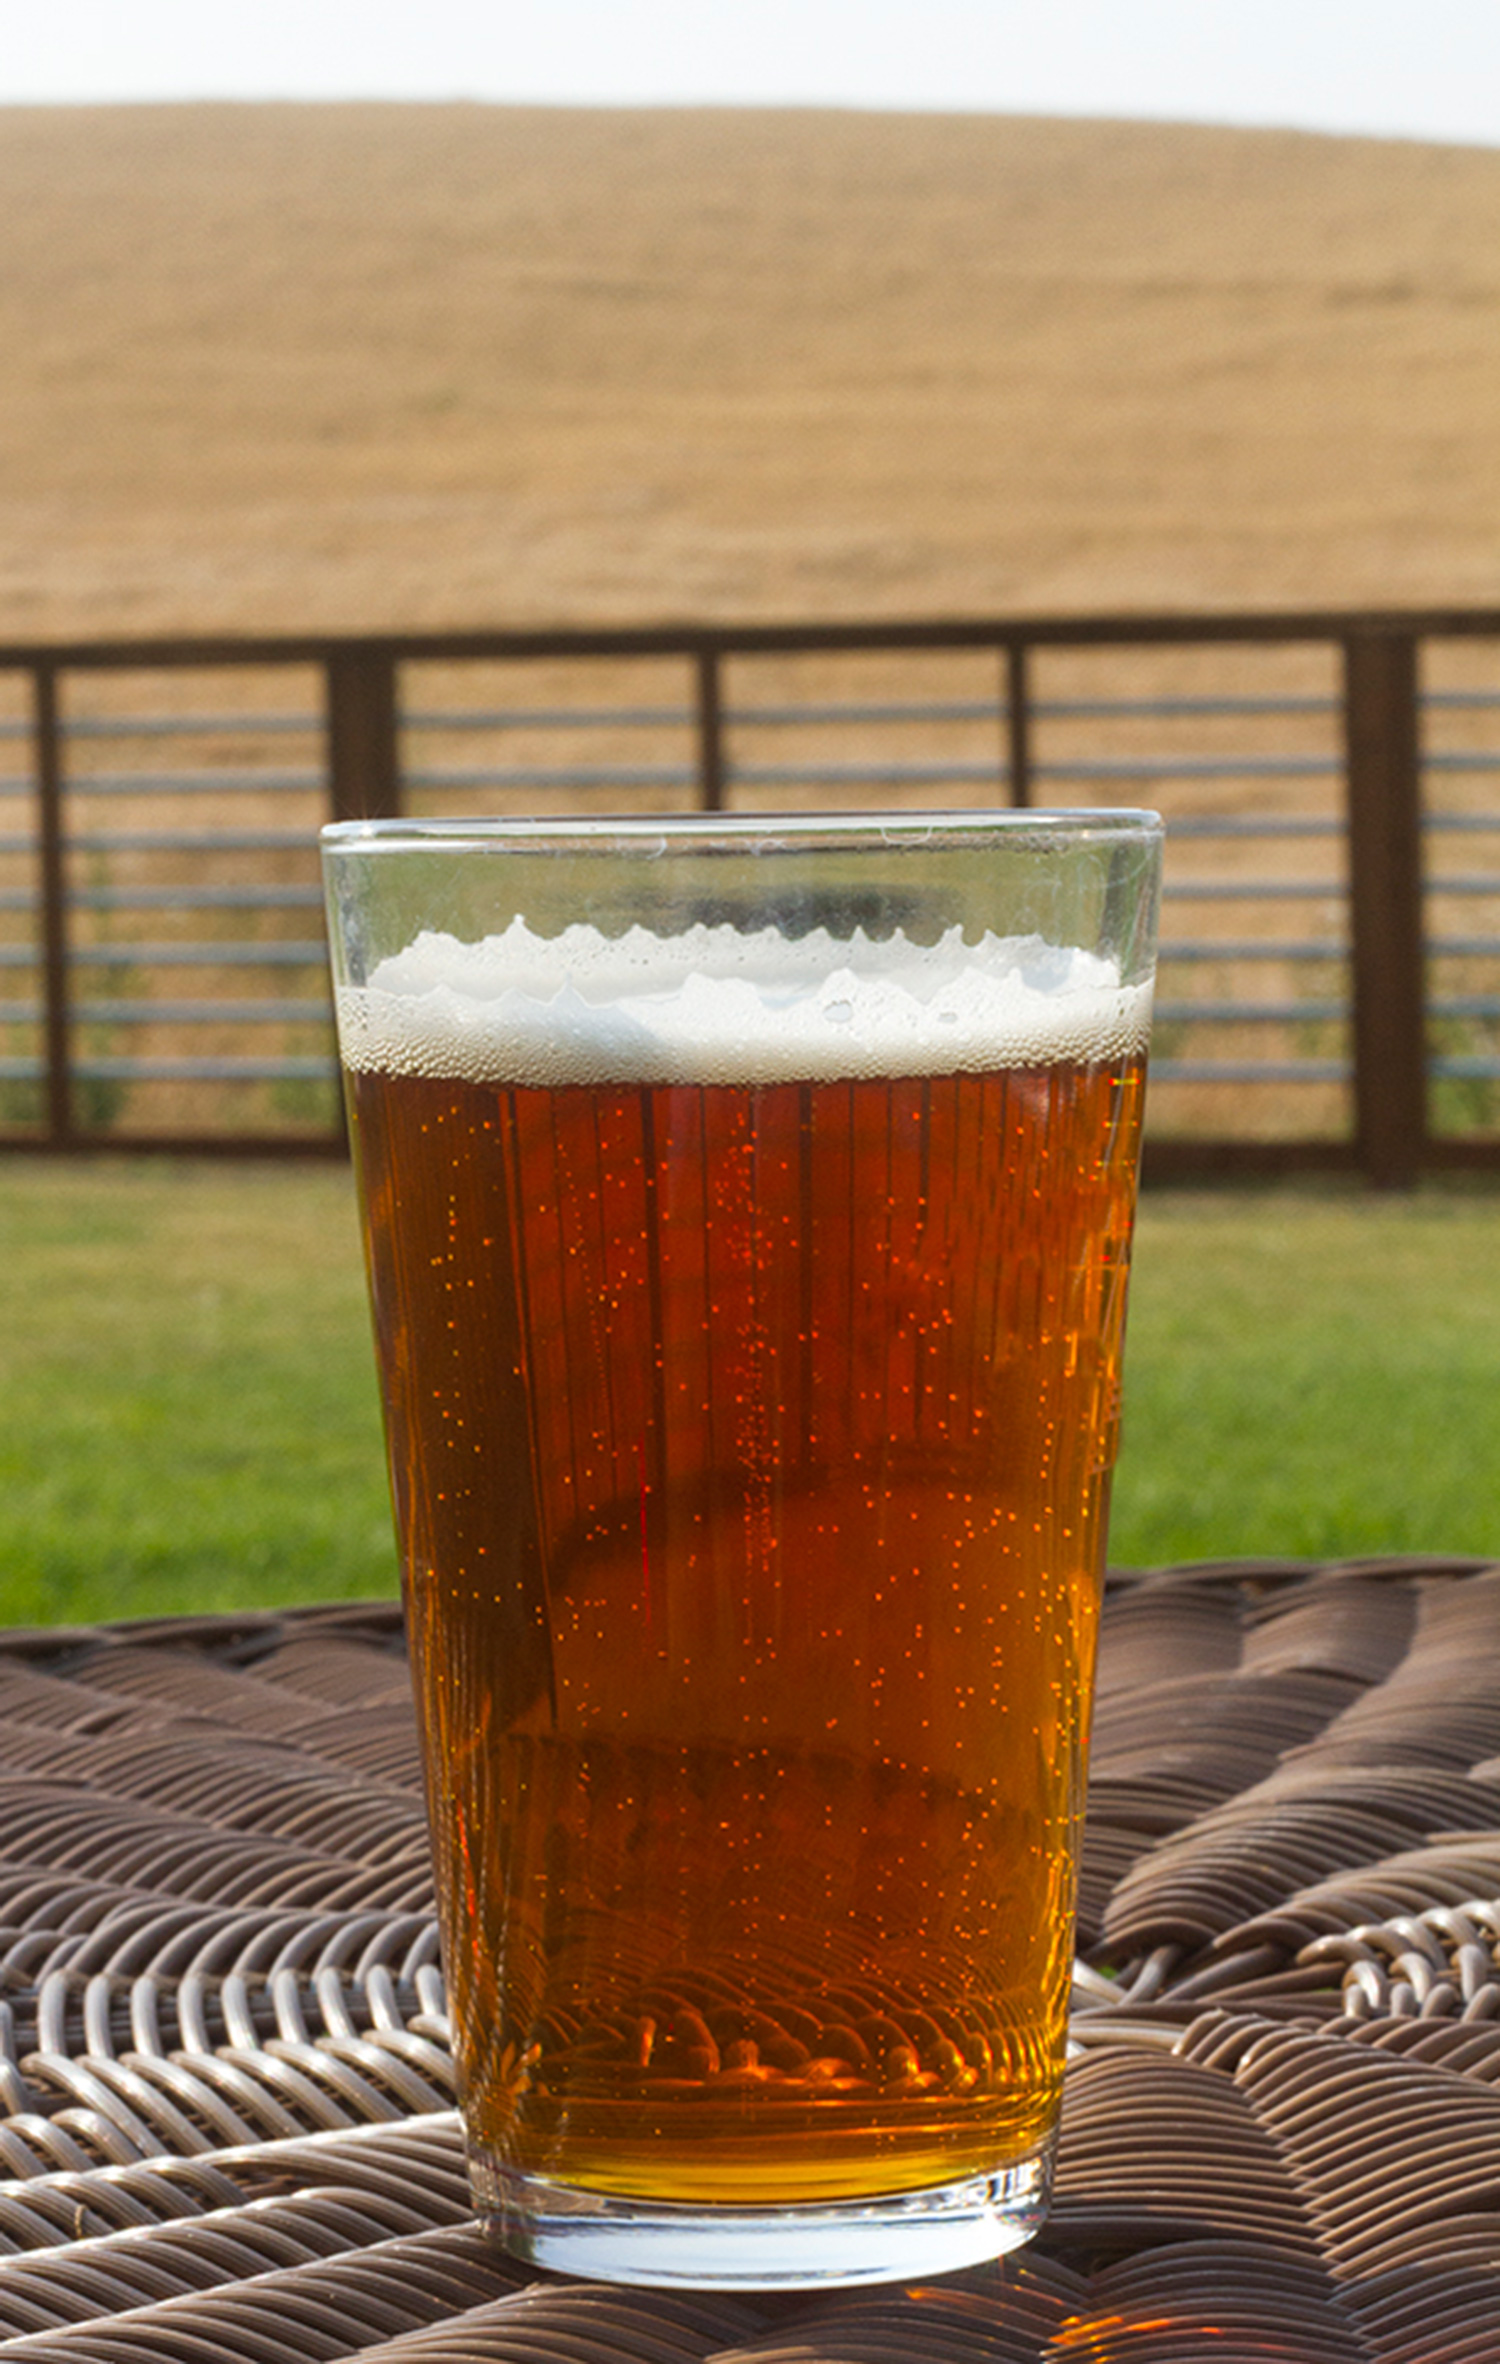 product differentiation in the beer industry The beer industry today in this paper i will be talking about the us beer industry and in short an overview of the brewing industry worldwide i will talk about the barriers to entry, economies of scale, government intervention, pricing, current market trends, product differentiation, and imports.